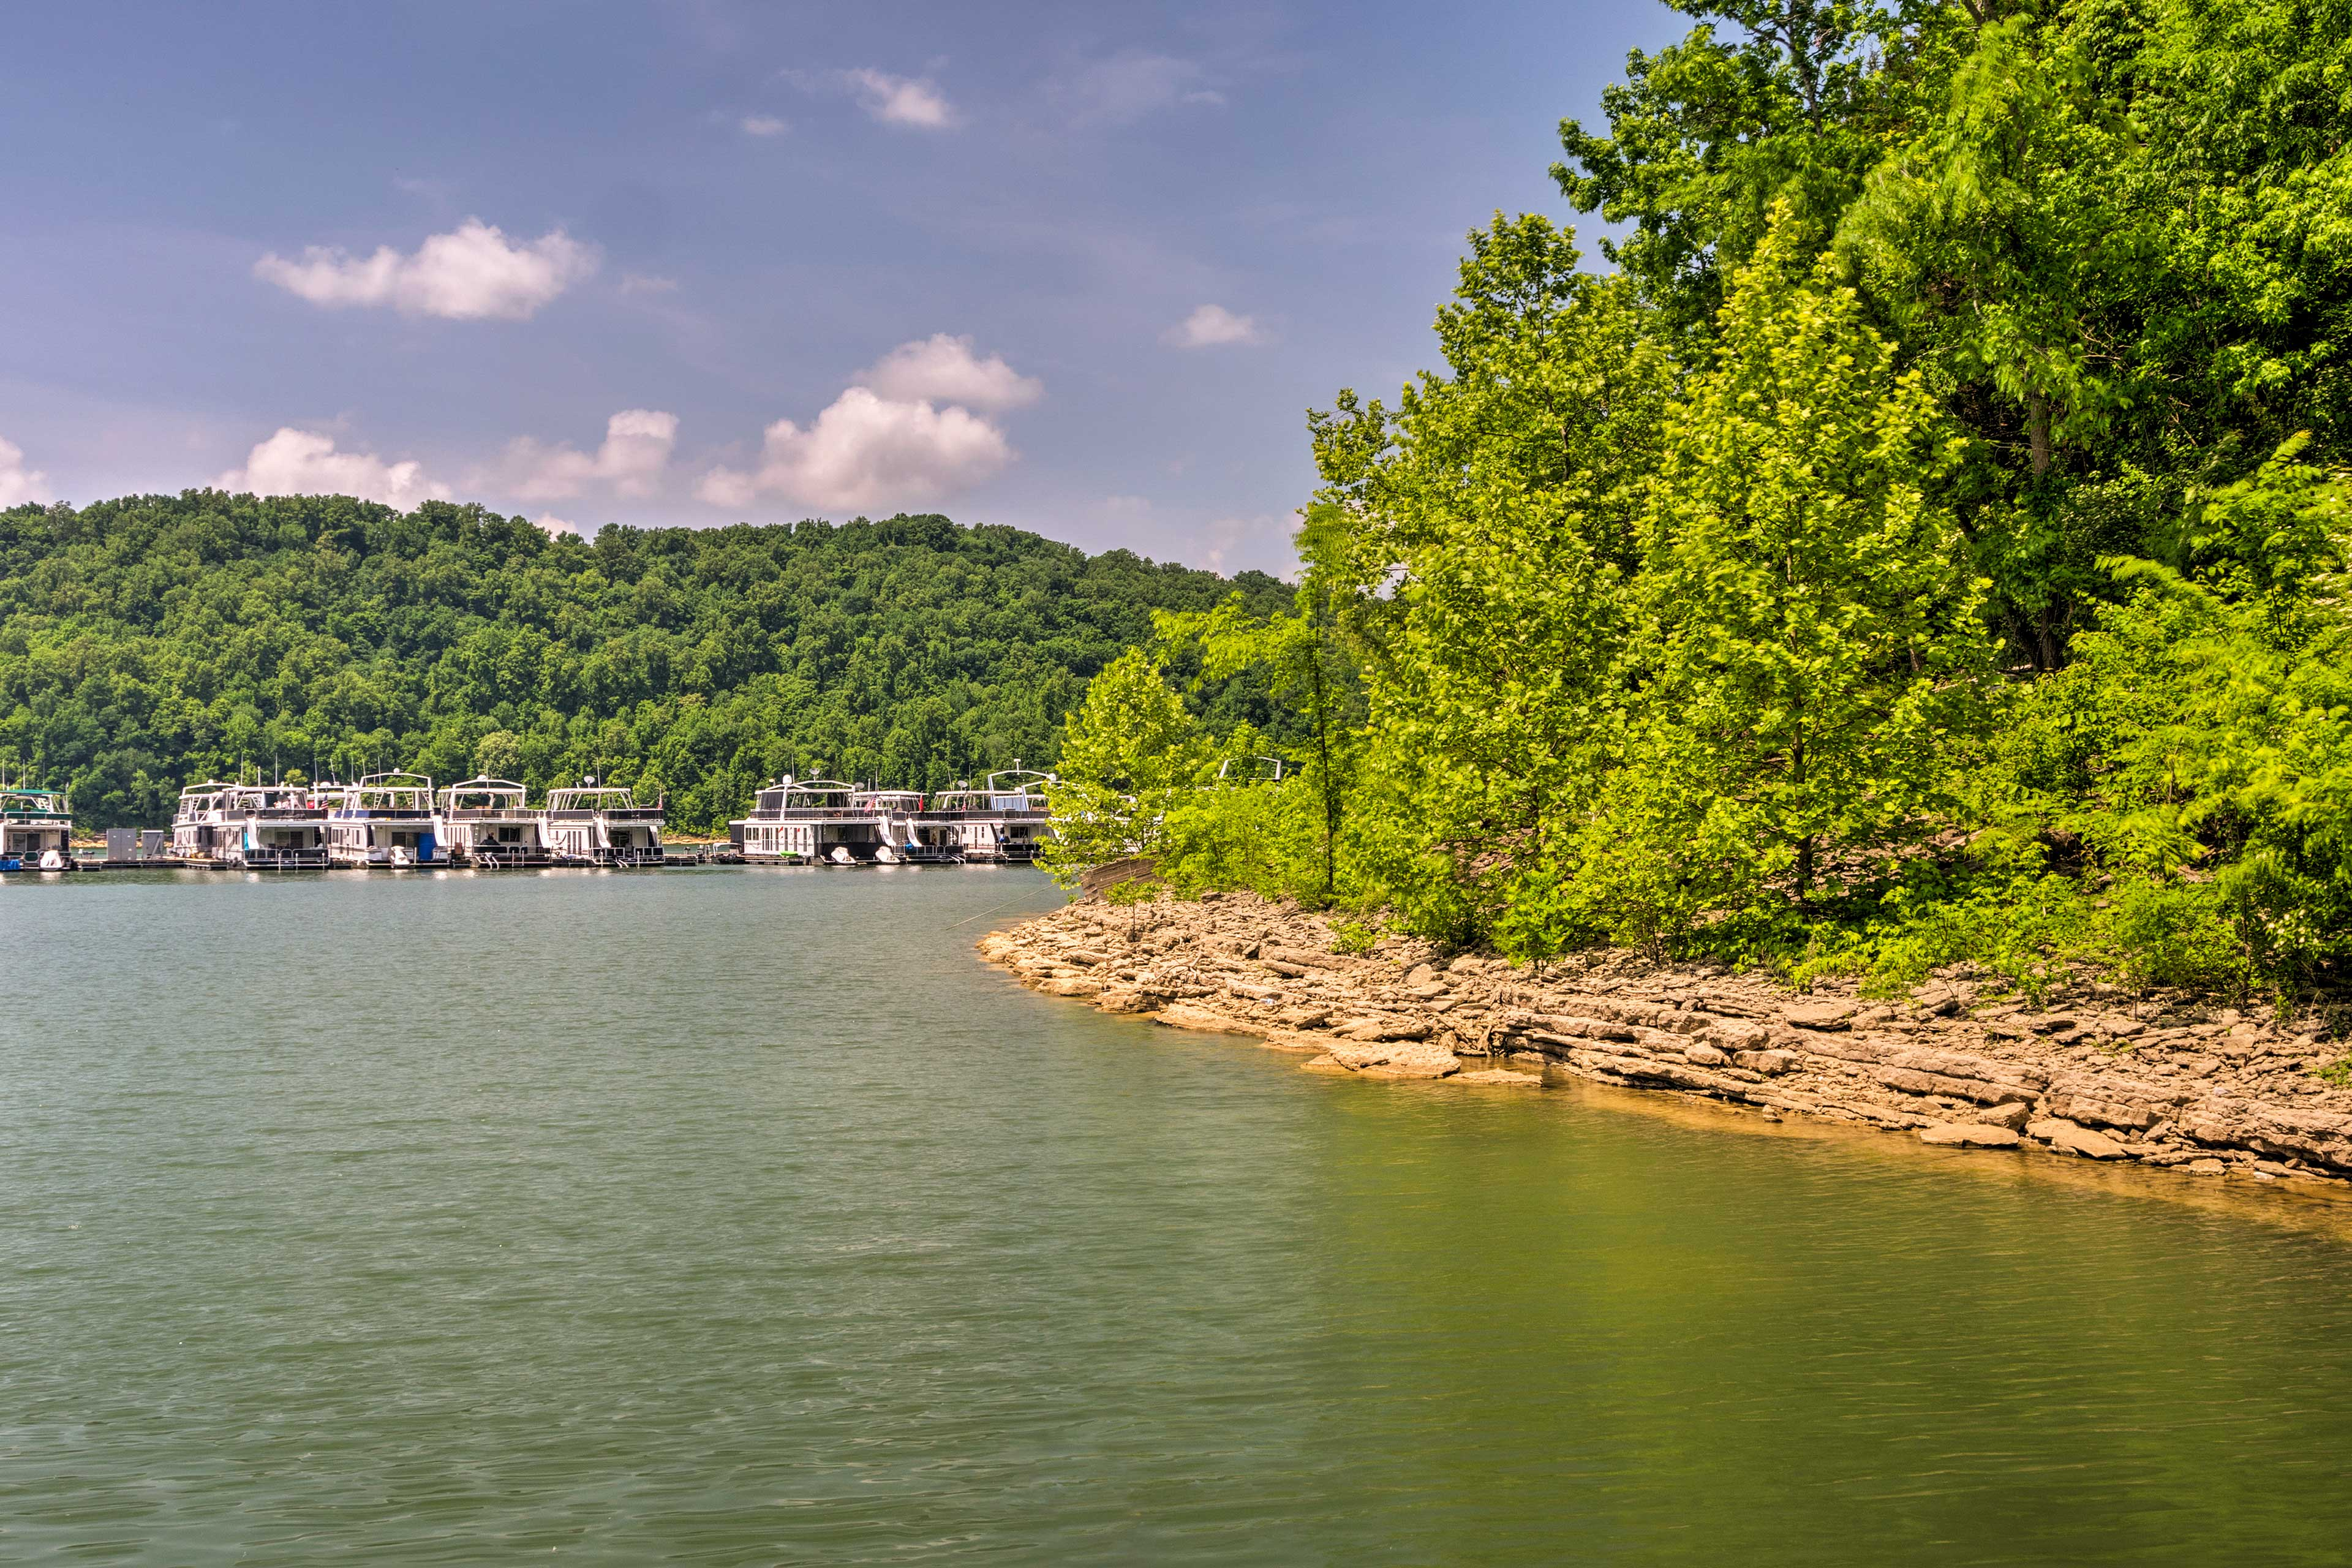 Rent a pontoon boat and go tubing!